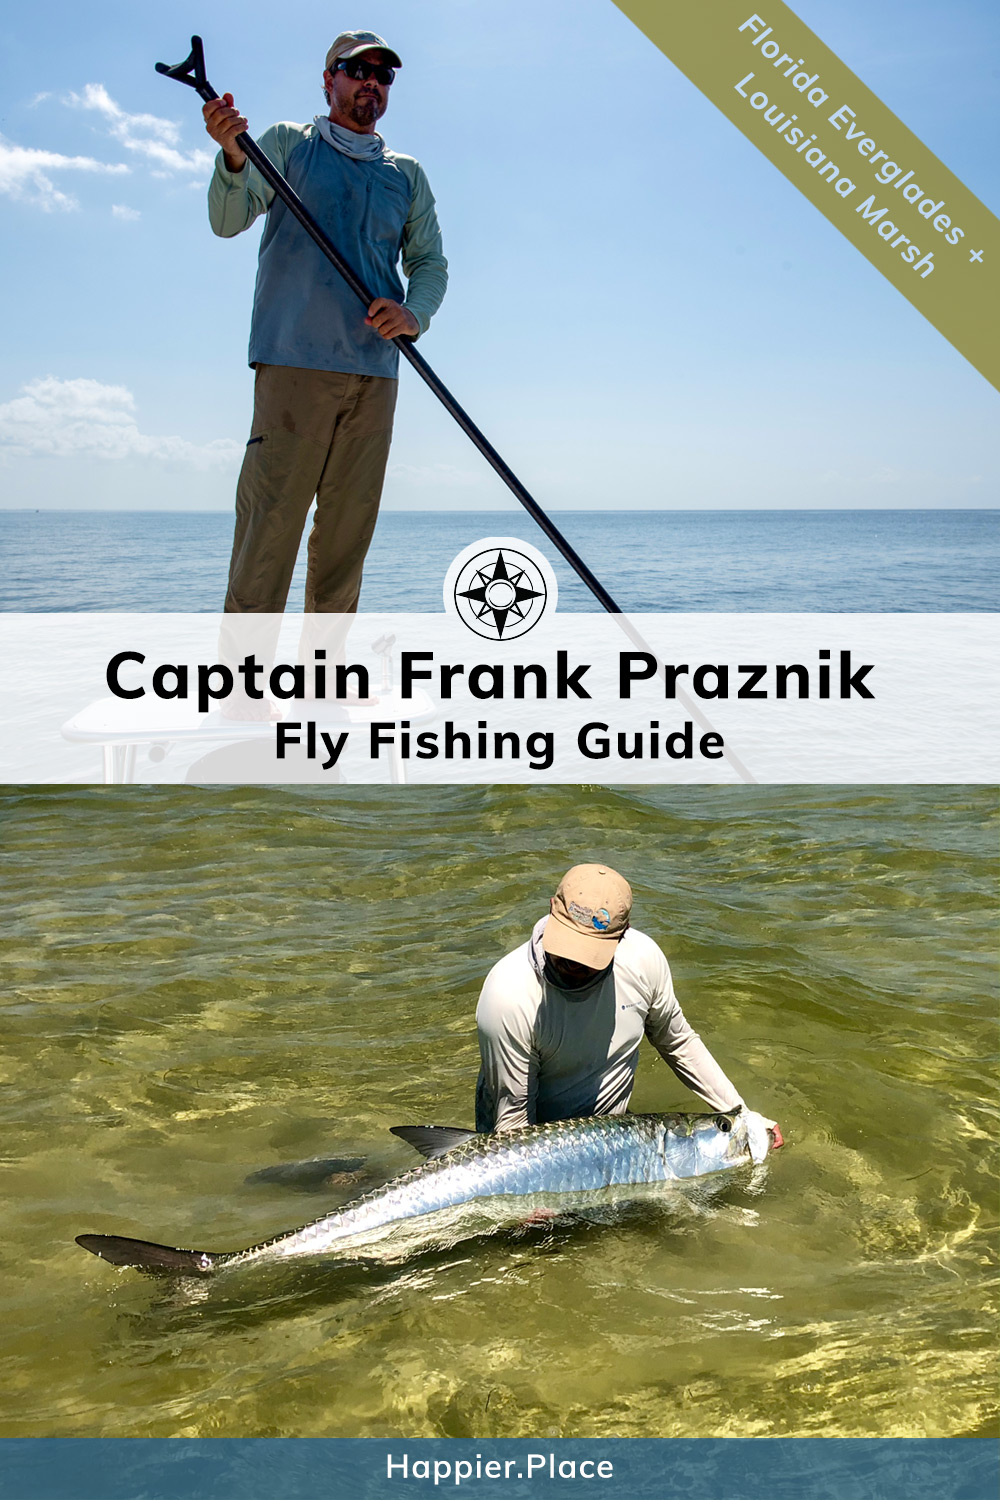 Interview with Captain Frank Praznik, Fly Fishing Guide in Louisiana Marsh and Florida Everglades. Seen guiding on his skiff platform and with a large tarpon. #flyfishing #fishing #HappierPlace #Florida #Louisiana